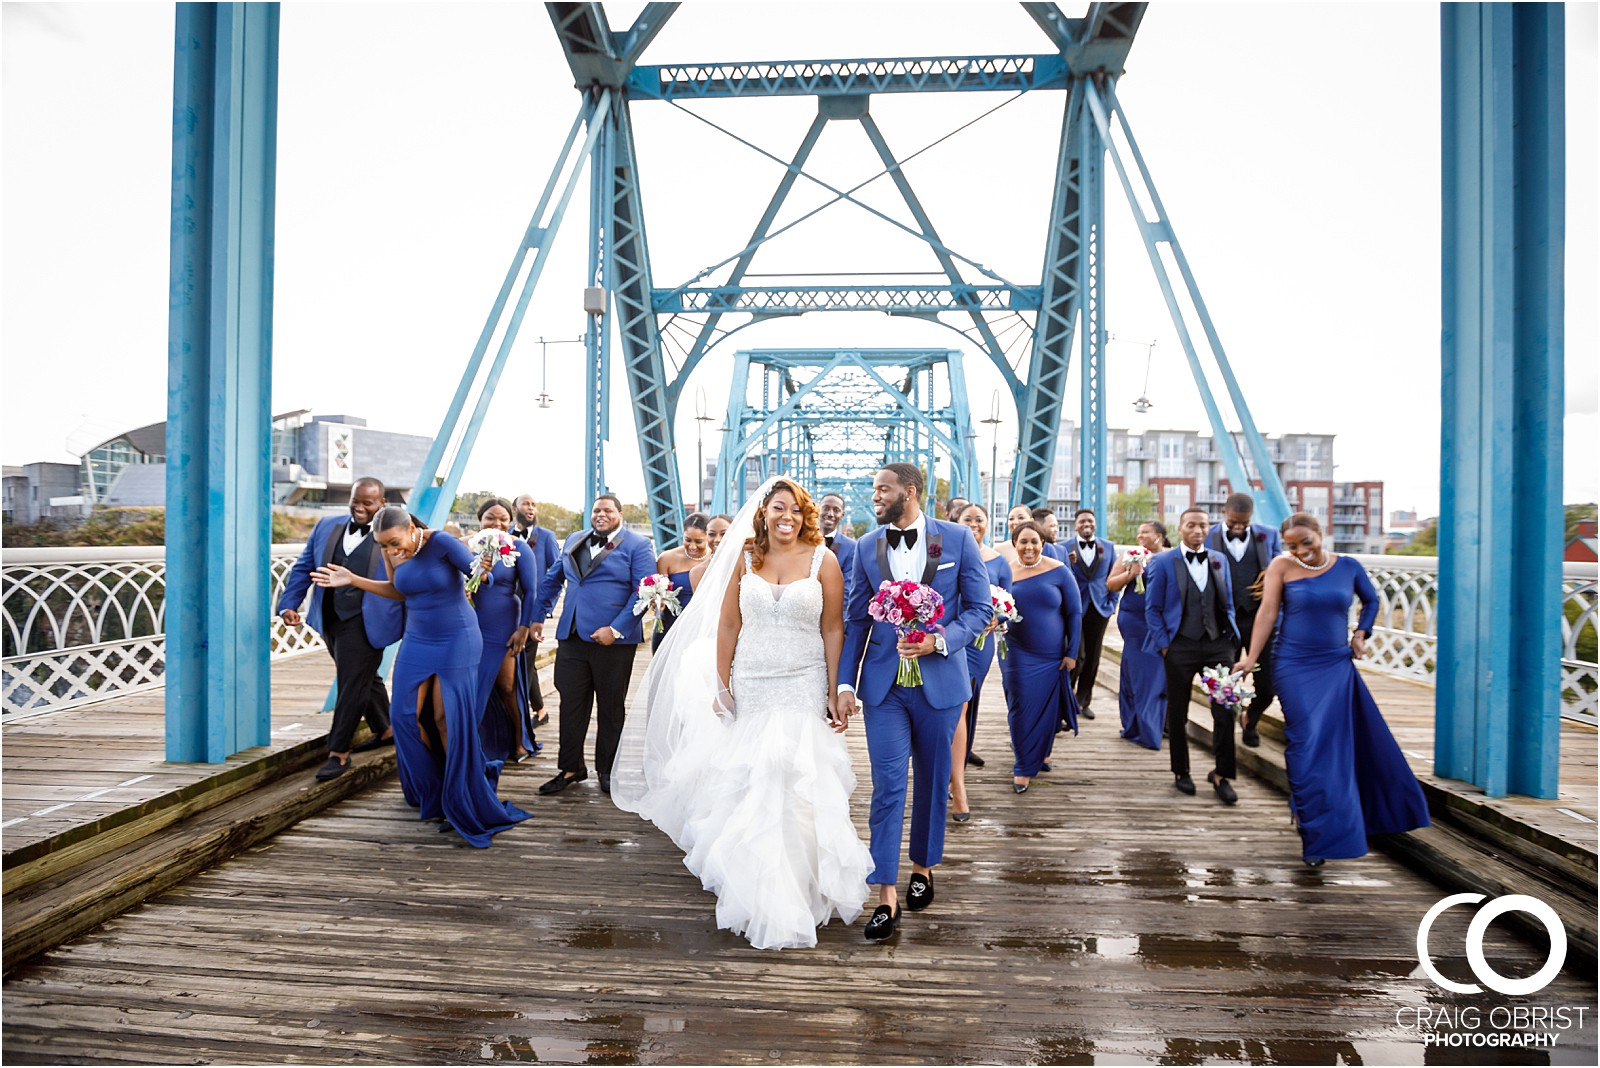 Stratton Hall Chattanooga Walnut Street Bridge Wedding Portraits_0027.jpg